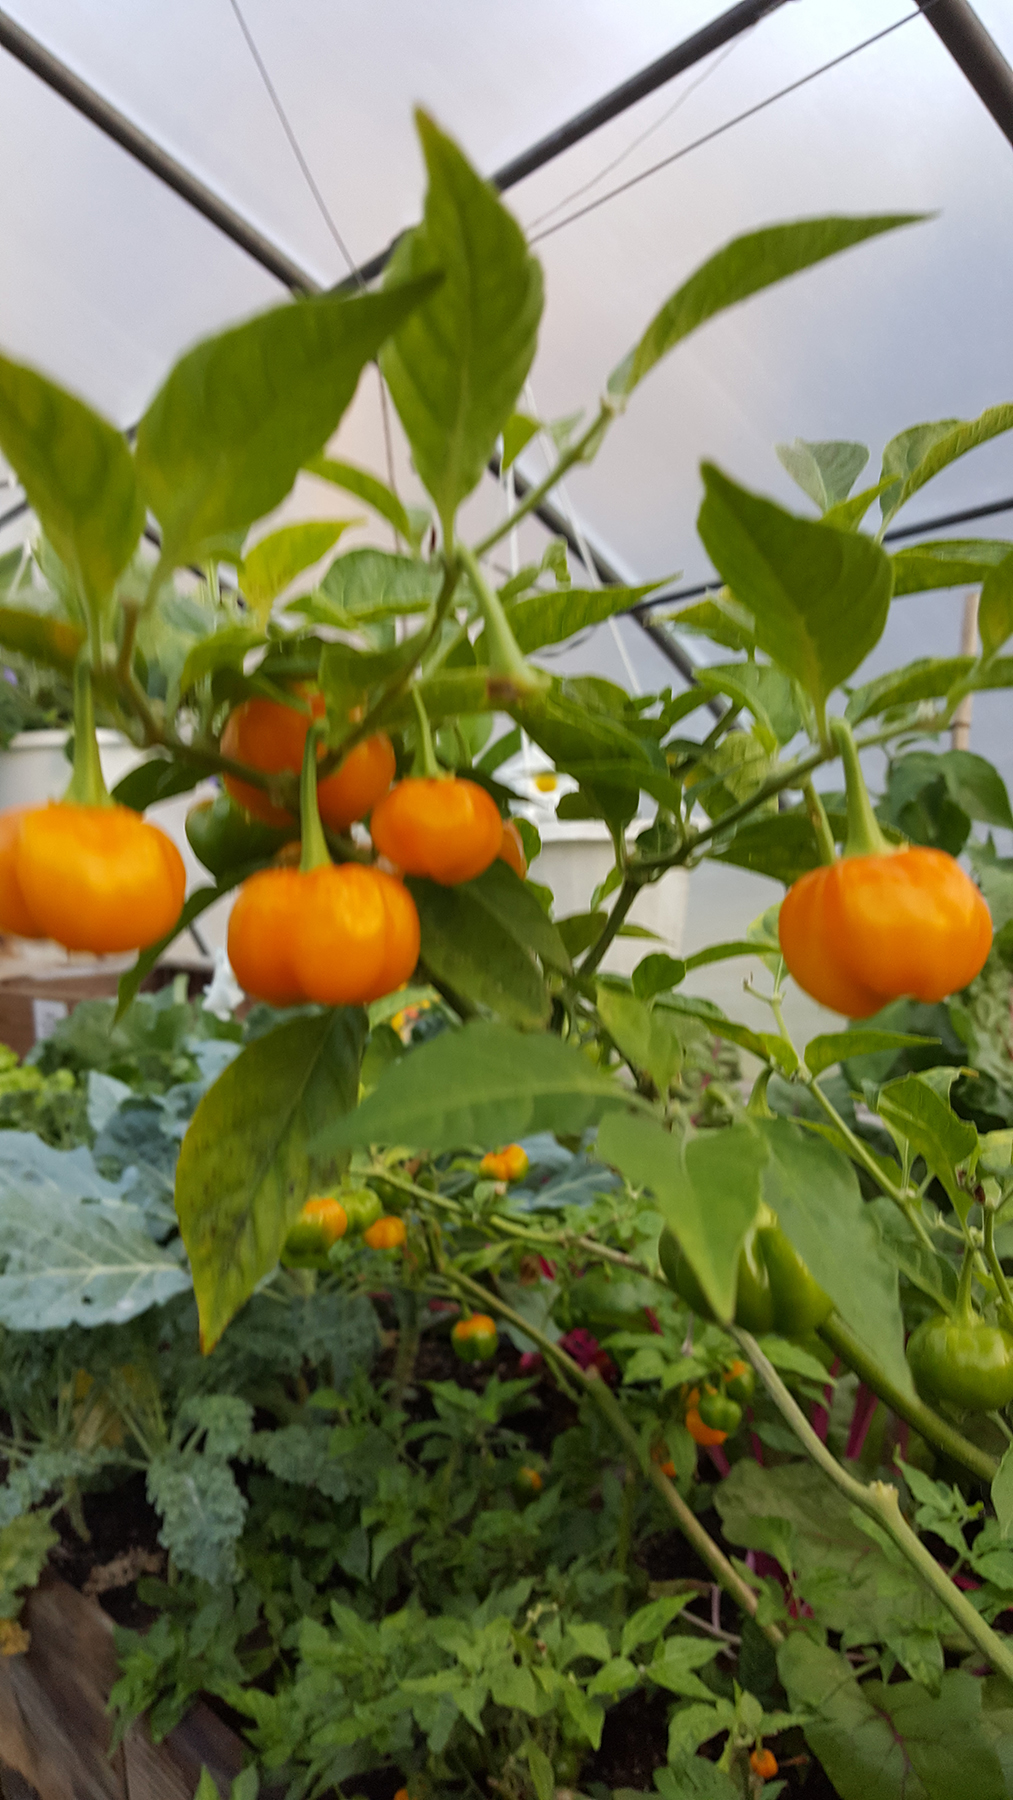 Orange peppers growing at MV Greenhouse